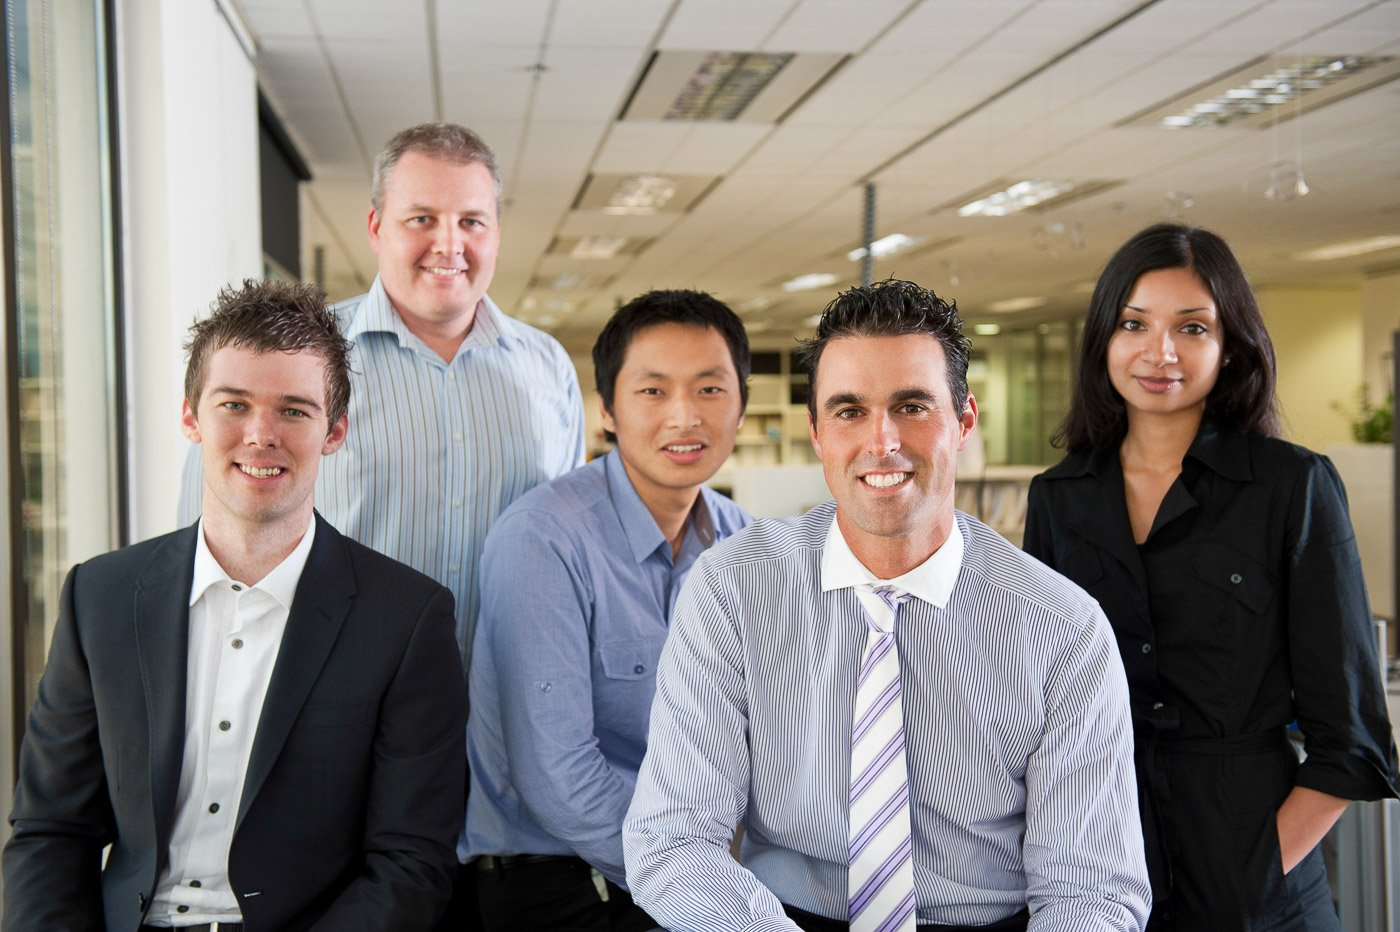 A team of people in a corporate office